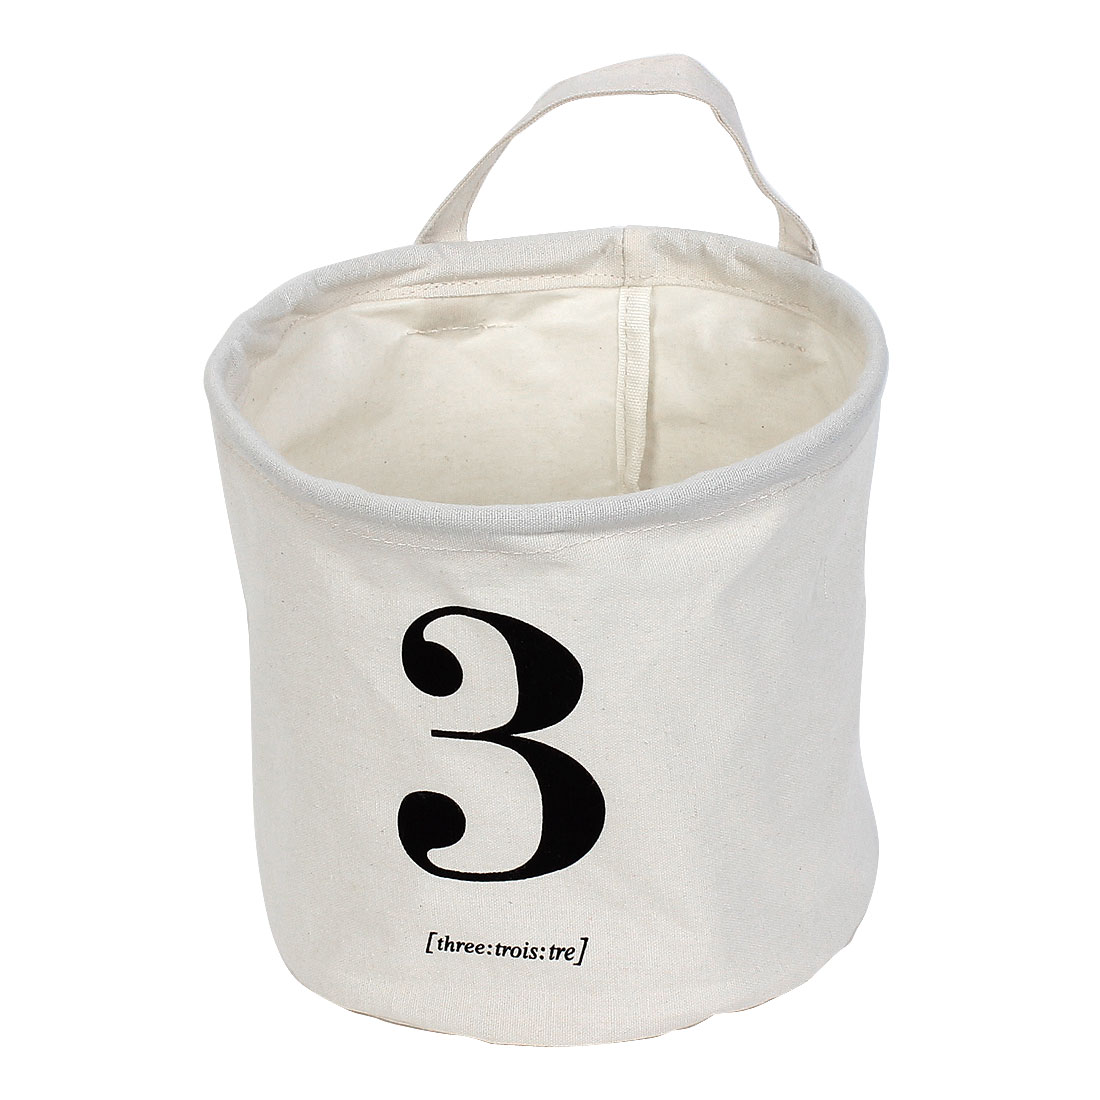 Arabic Numeral Three Print Binaural Storage Basket Bucket Organizer 2pcs